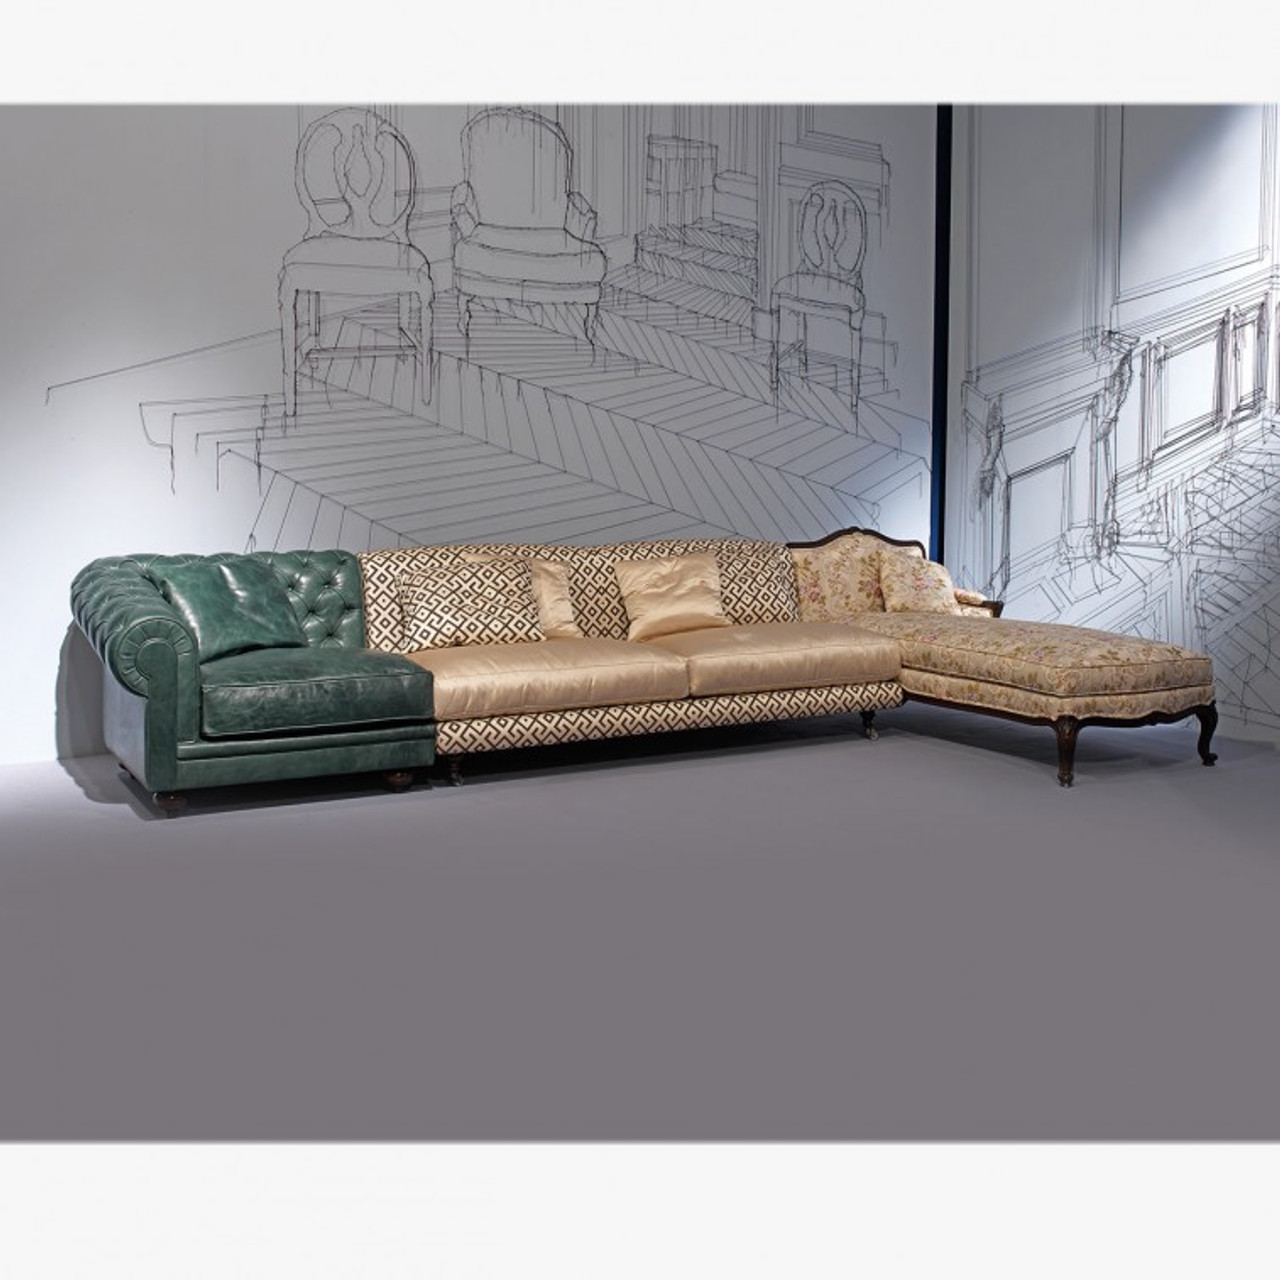 chesterfield sectional sofa with chaise green and peach multi